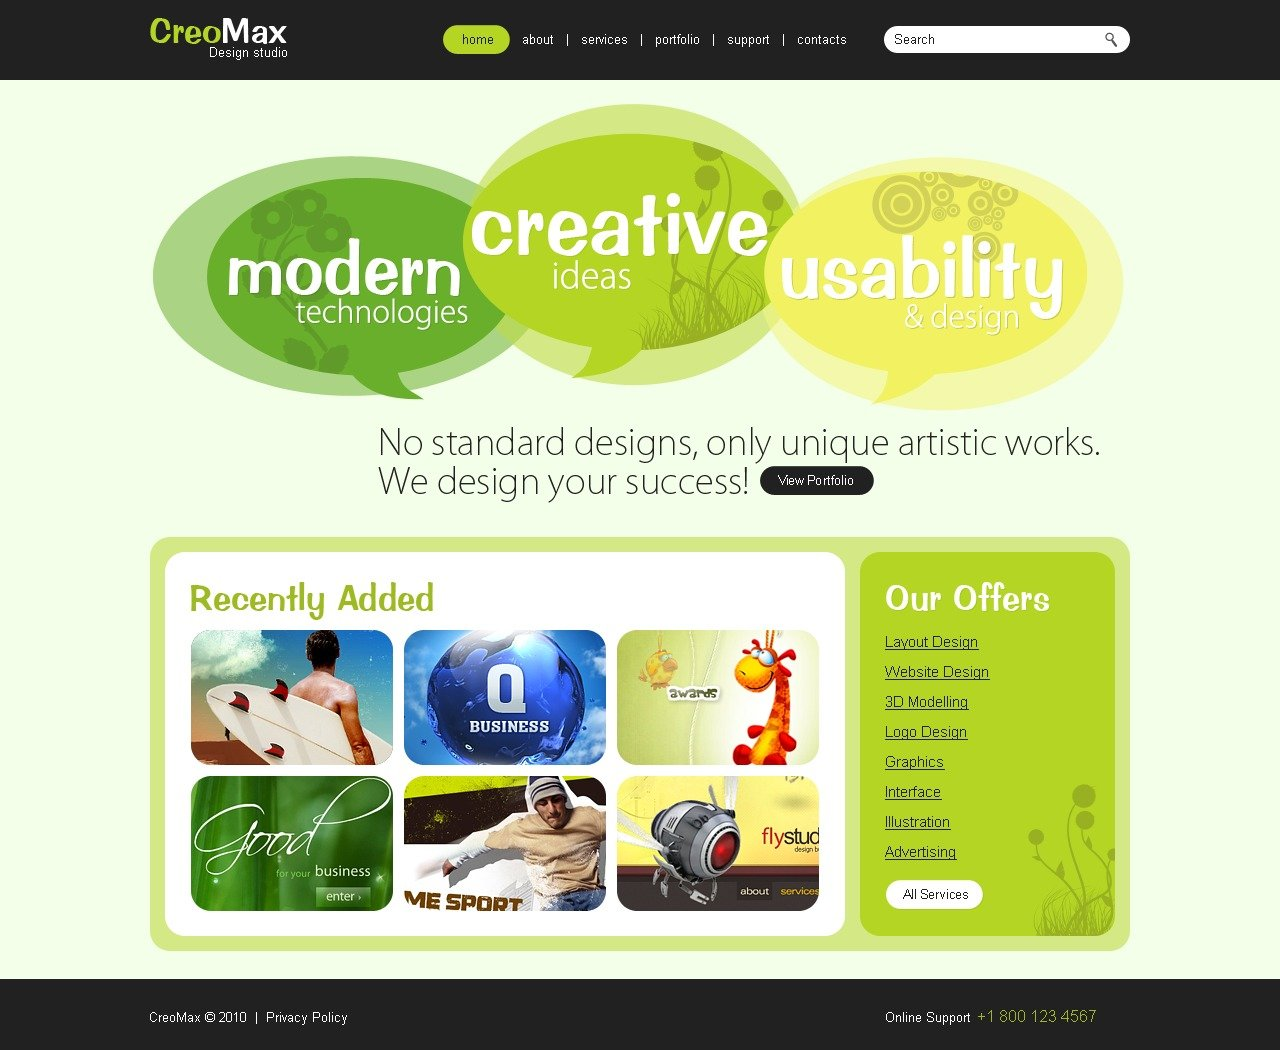 The Creo Max Design Studio PSD Design 54287, one of the best PSD templates of its kind (web design, flash 8, wide), also known as creo max design studio PSD template, creative art gallery PSD template, artists PSD template, painting PSD template, painters PSD template, web development PSD template, webmasters PSD template, designers PSD template, internet PSD template, www PSD template, sites PSD template, web design PSD template, webpage PSD template, personal portfolio and related with creo max design studio, creative art gallery, artists, painting, painters, web development, webmasters, designers, internet, www, sites, web design, webpage, personal portfolio, etc.